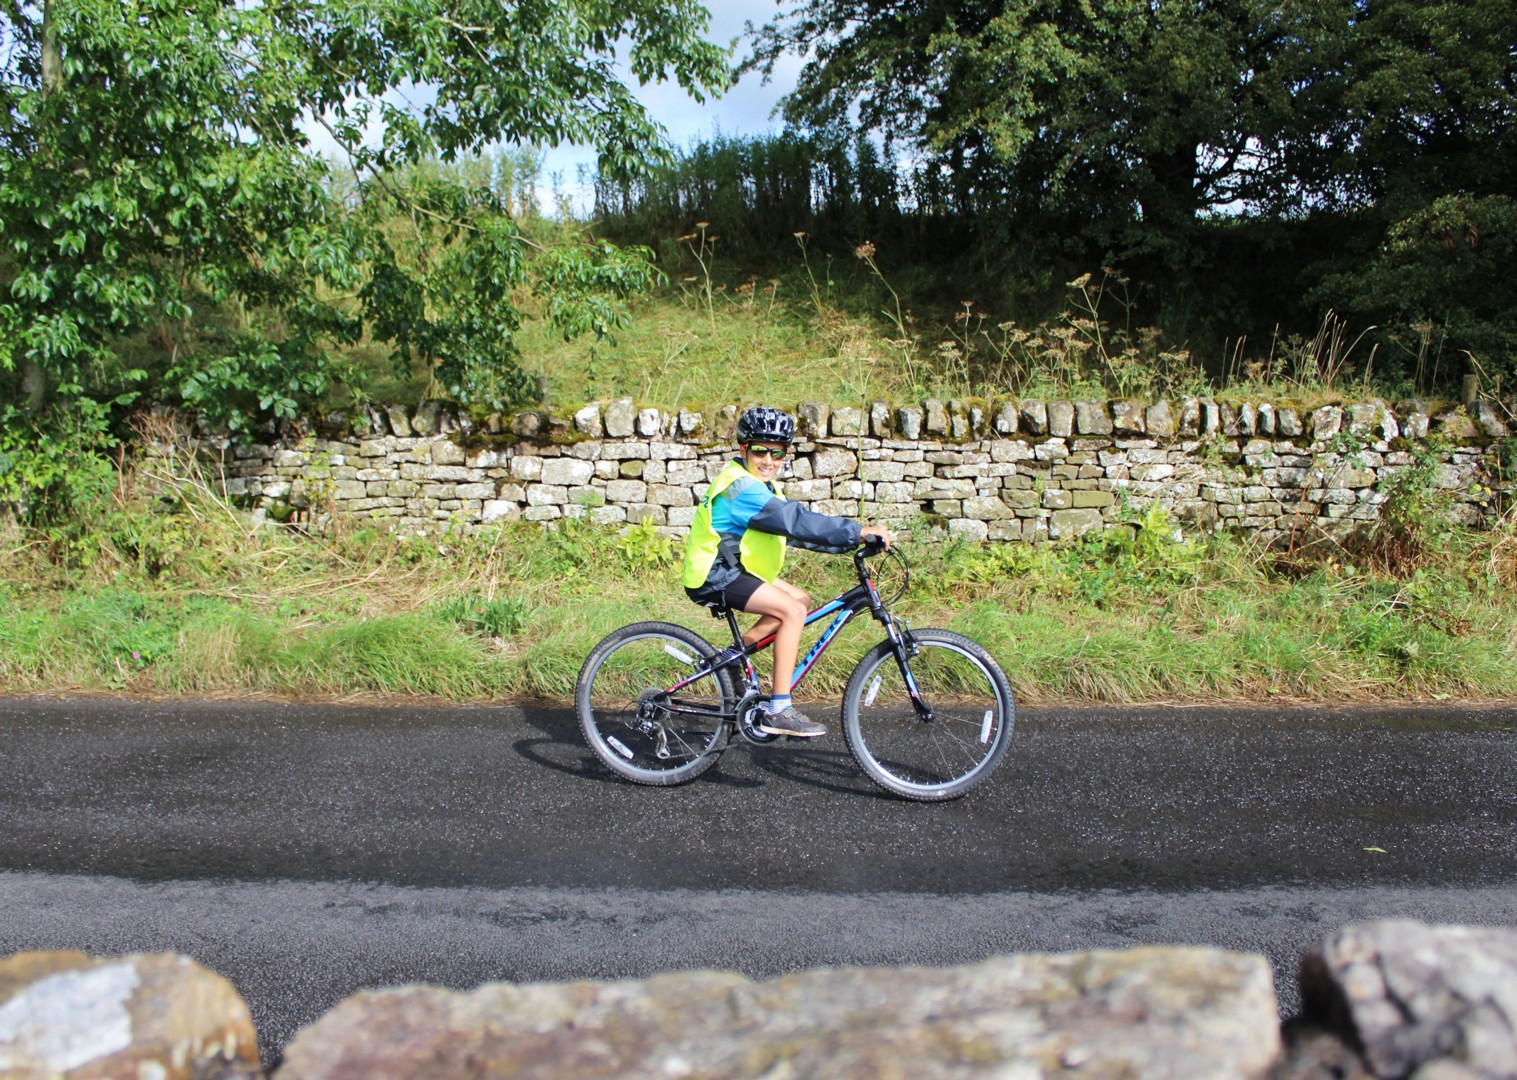 hadrians-wall-cycling-trip-family-self-guided.jpg - UK - Hadrian's Cycleway - 4 Days Cycling - Self-Guided Family Cycling Holiday - Family Cycling